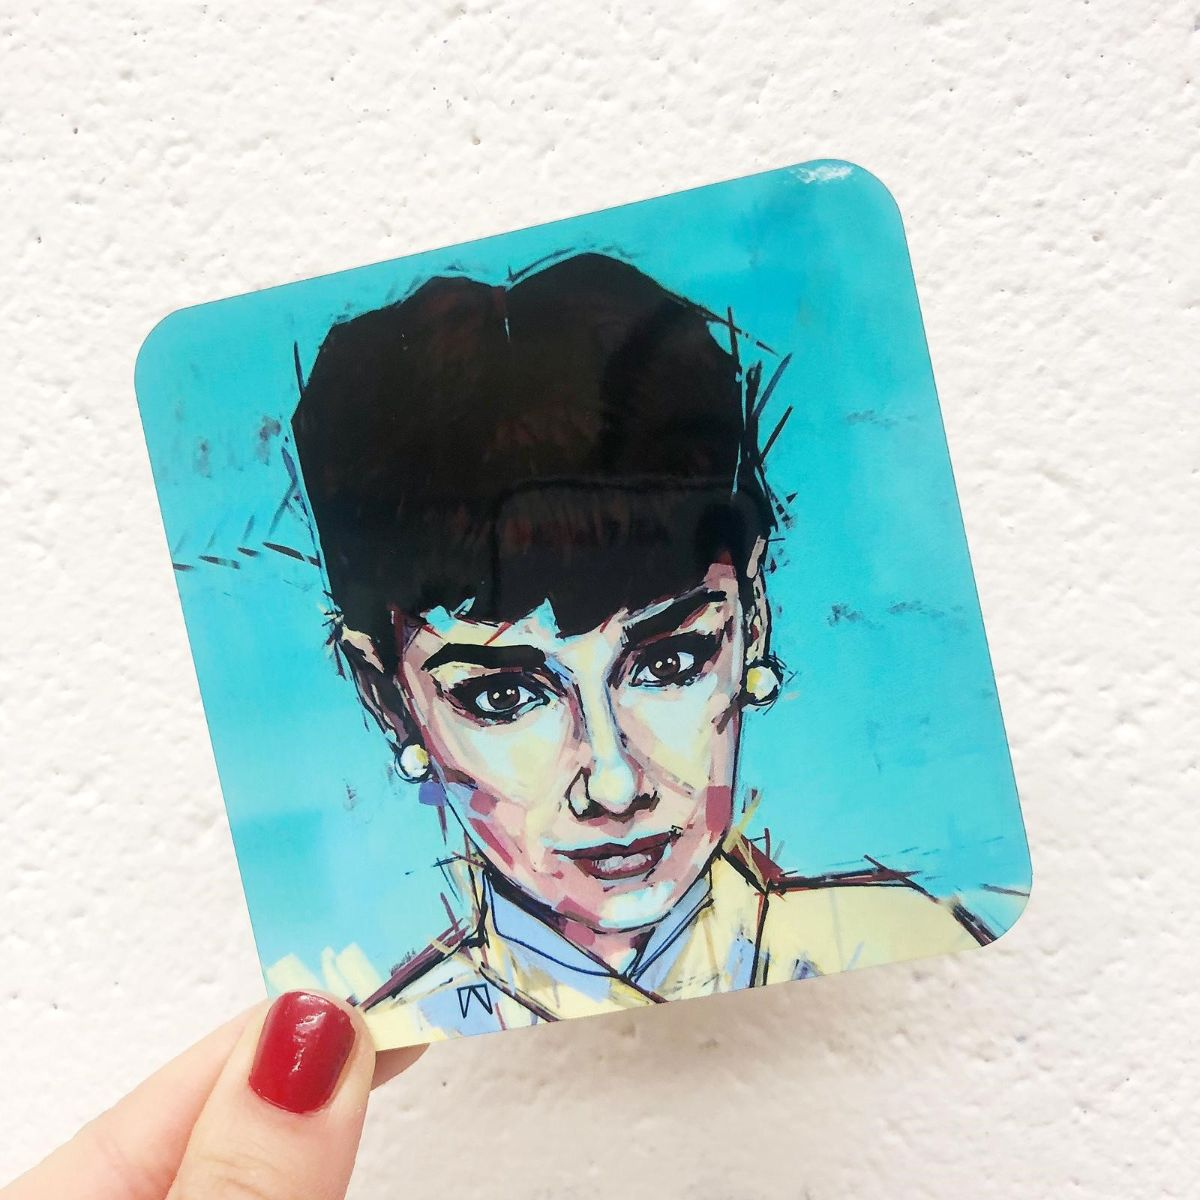 Audrey Hepburn artwork